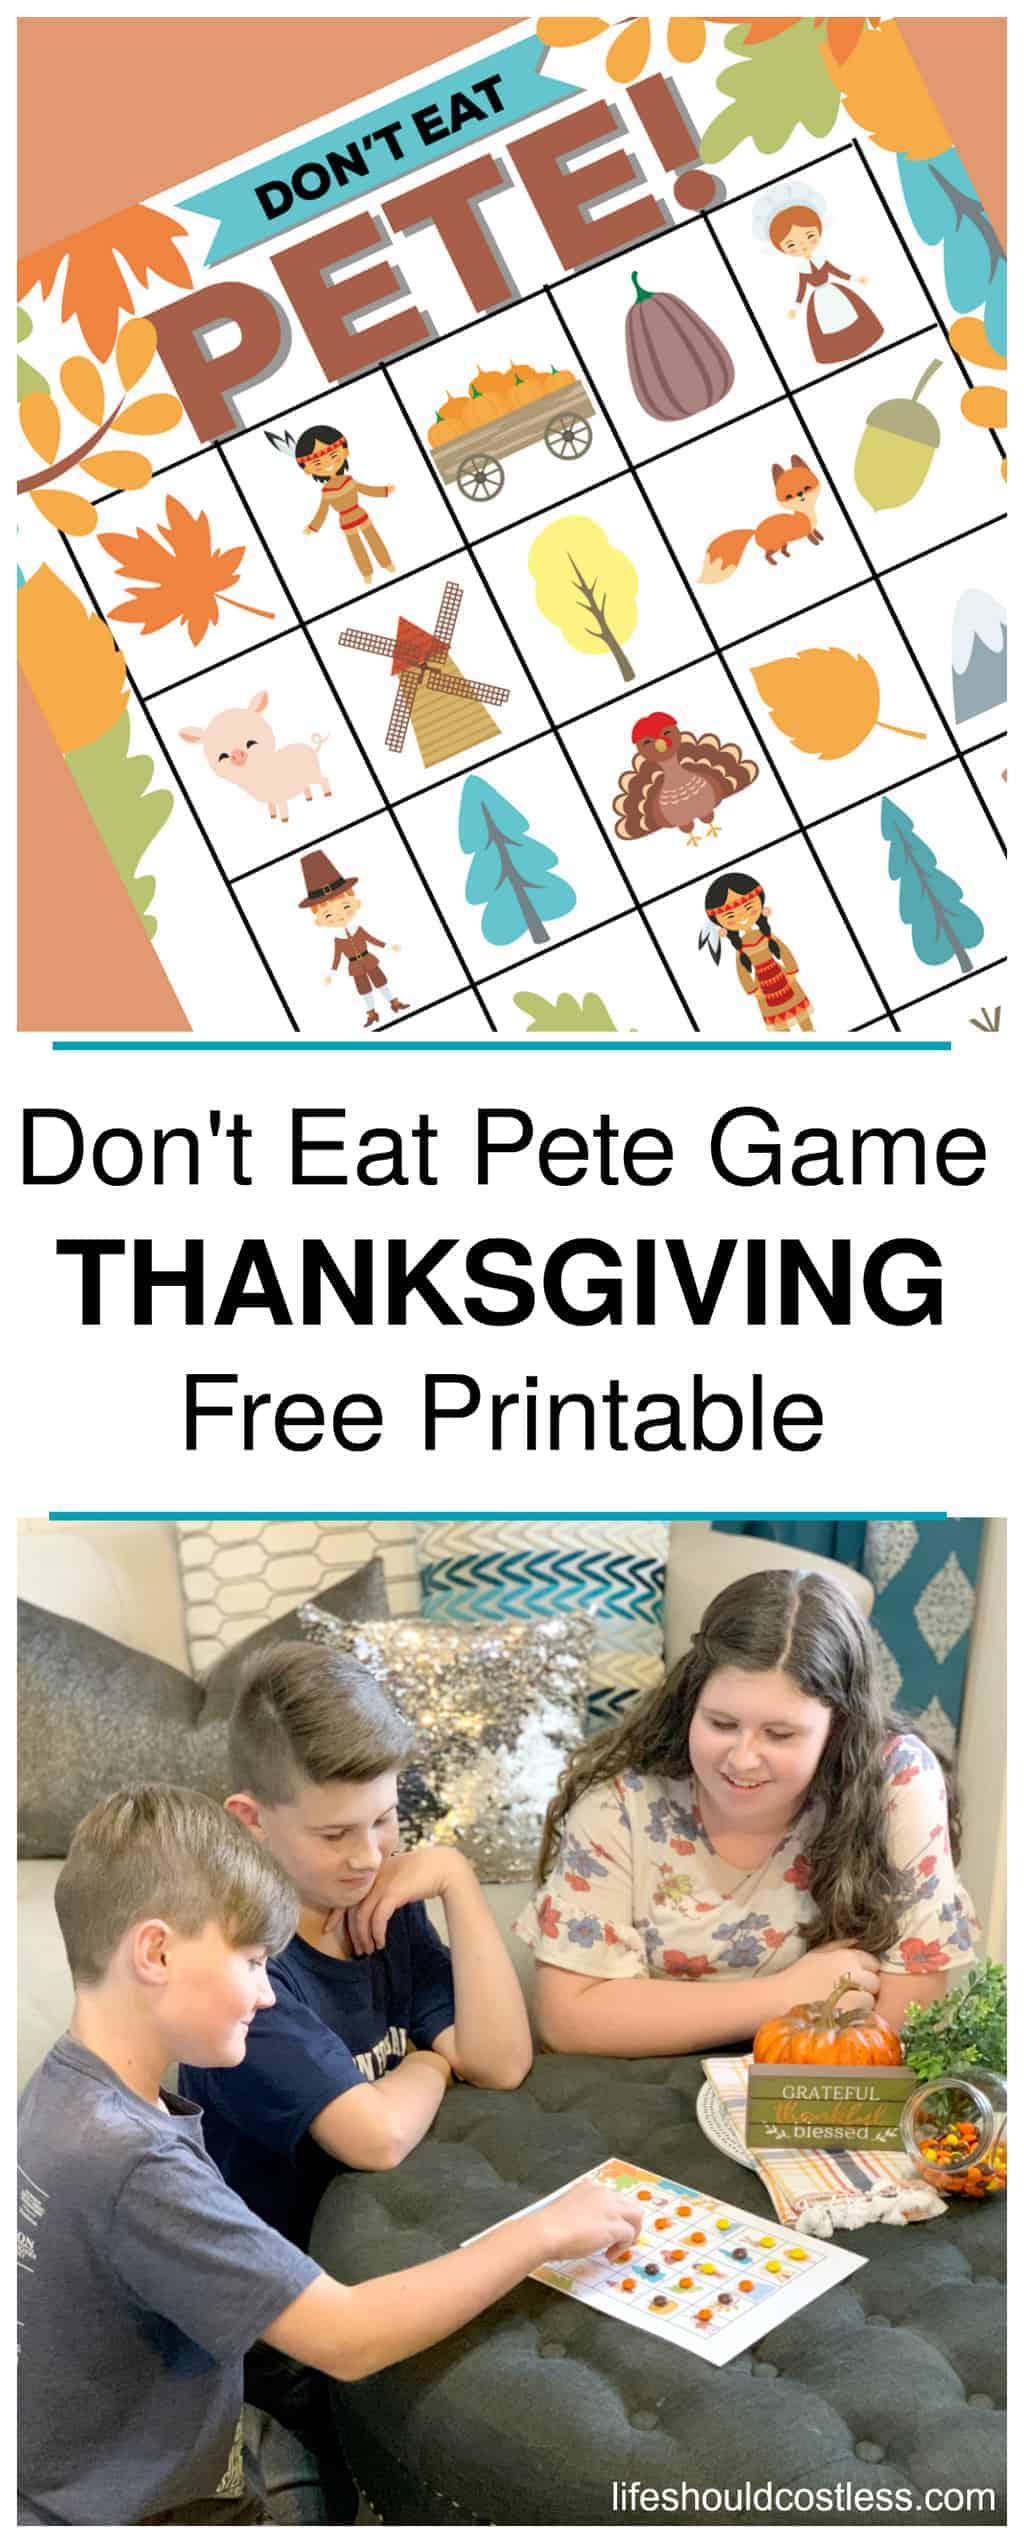 Don't Eat Pete Free Printable Kids Game, Thanksgiving Version